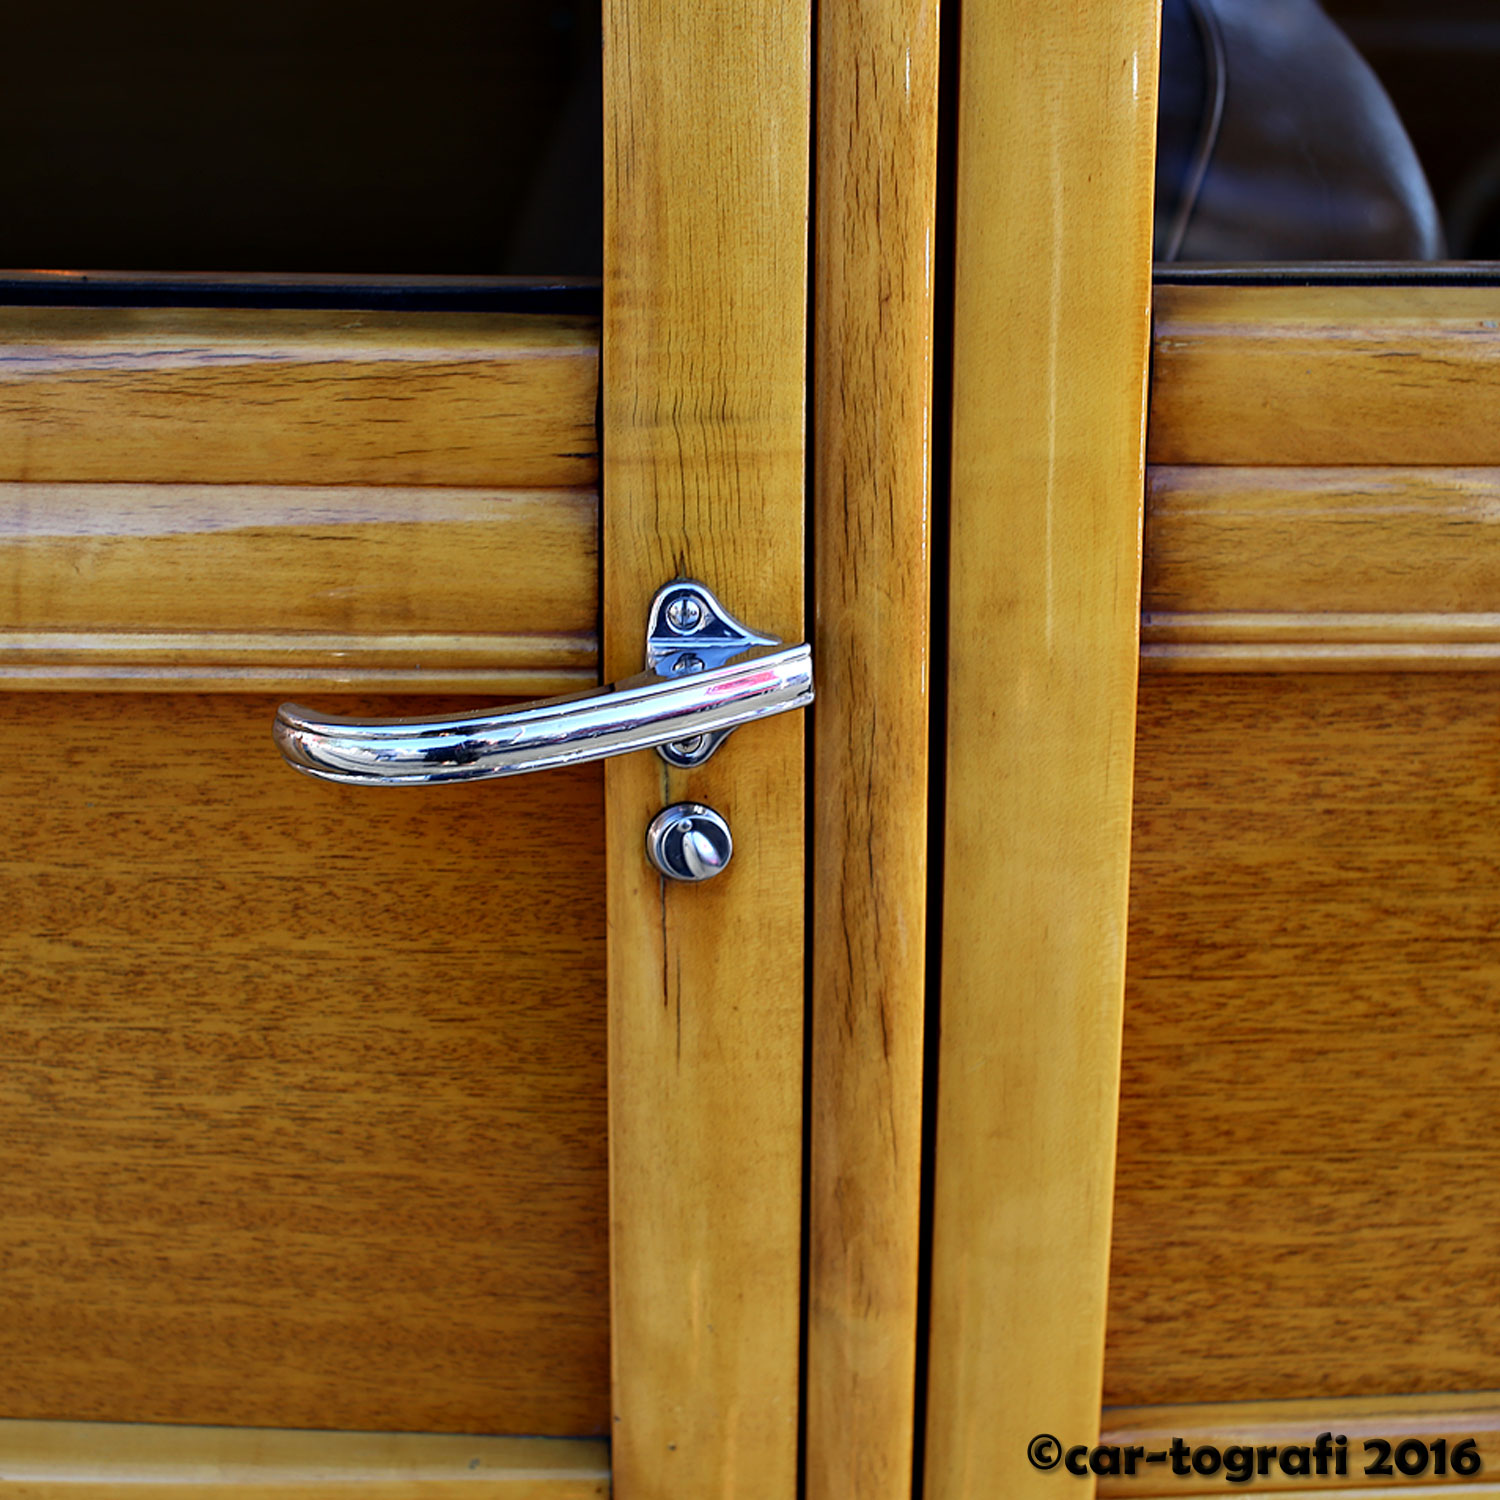 wood-doheny-car-tografi-4.jpg